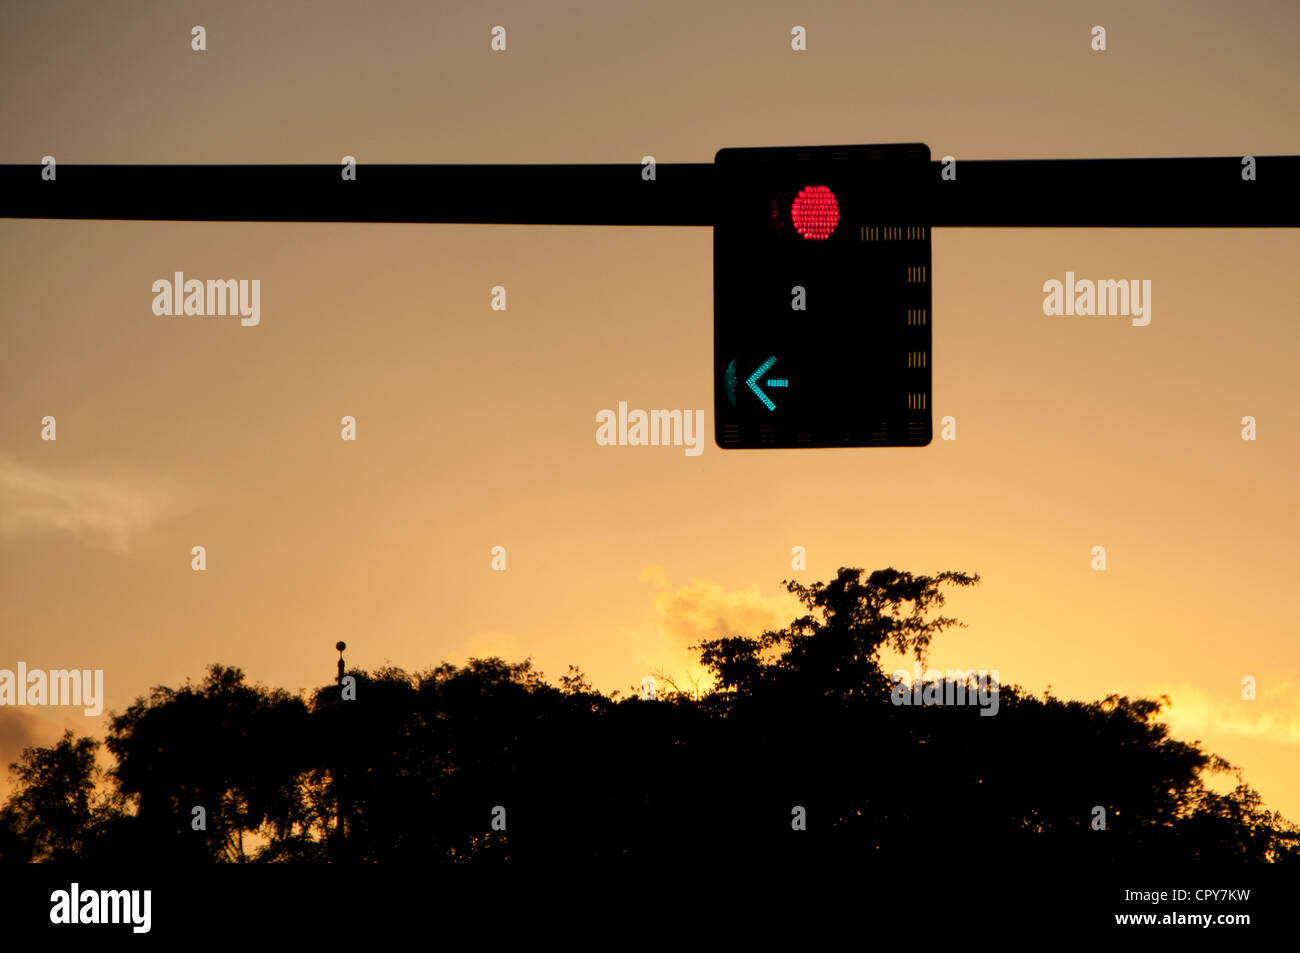 Red light, green arrow. - Stock Image